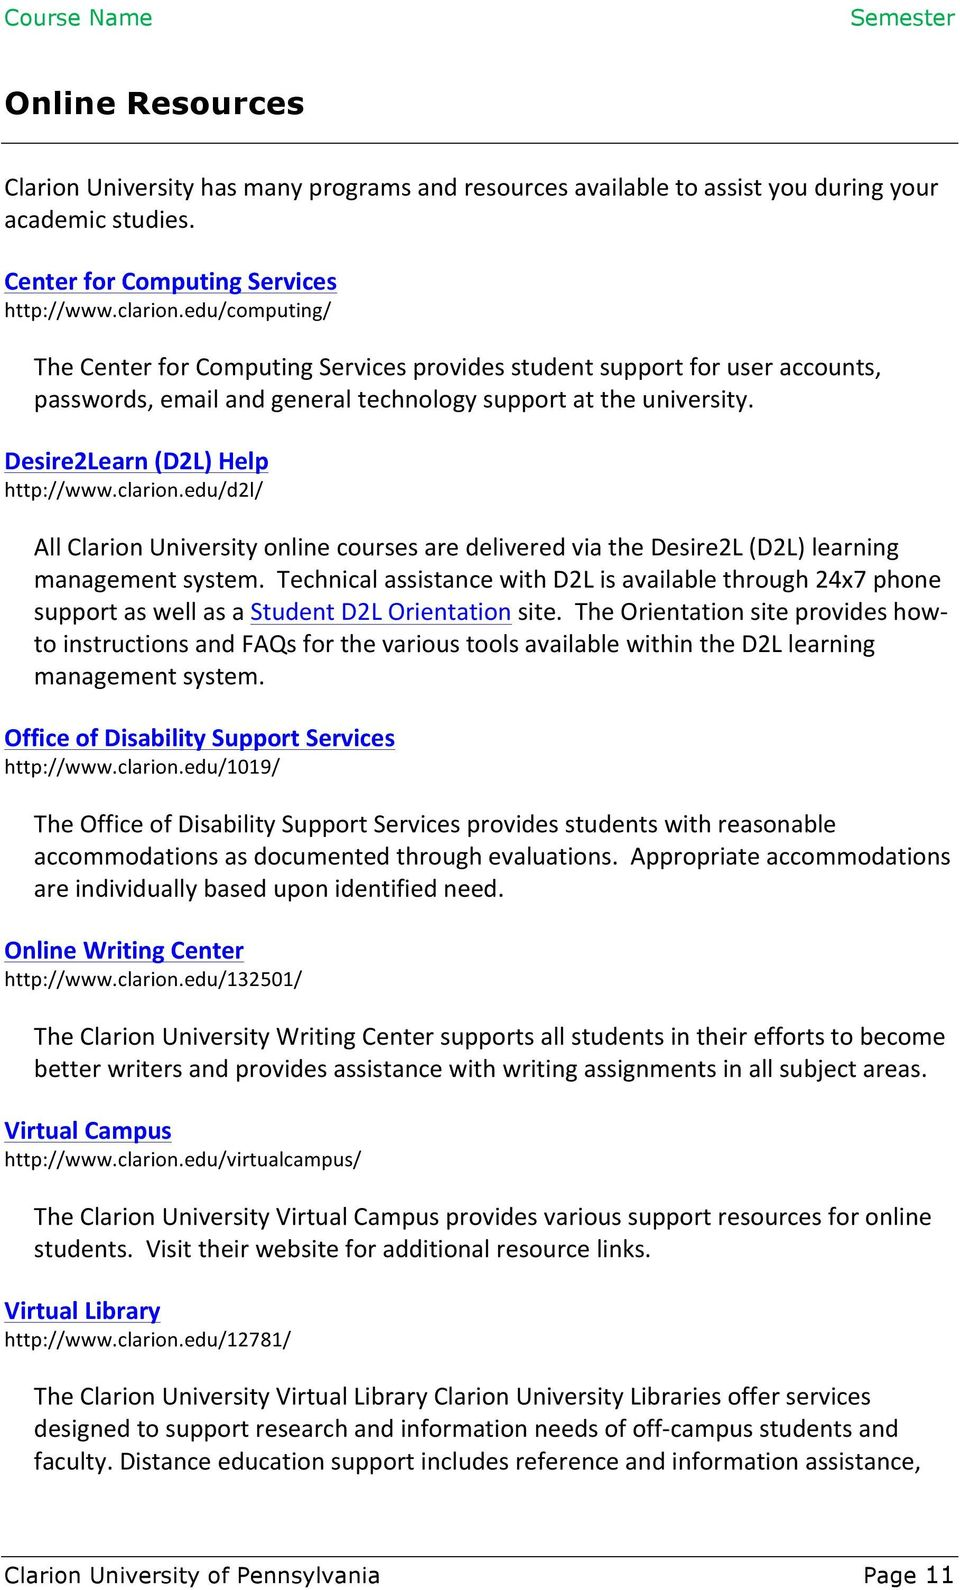 clarion.edu/d2l/ All Clarion University online courses are delivered via the Desire2L (D2L) learning management system.